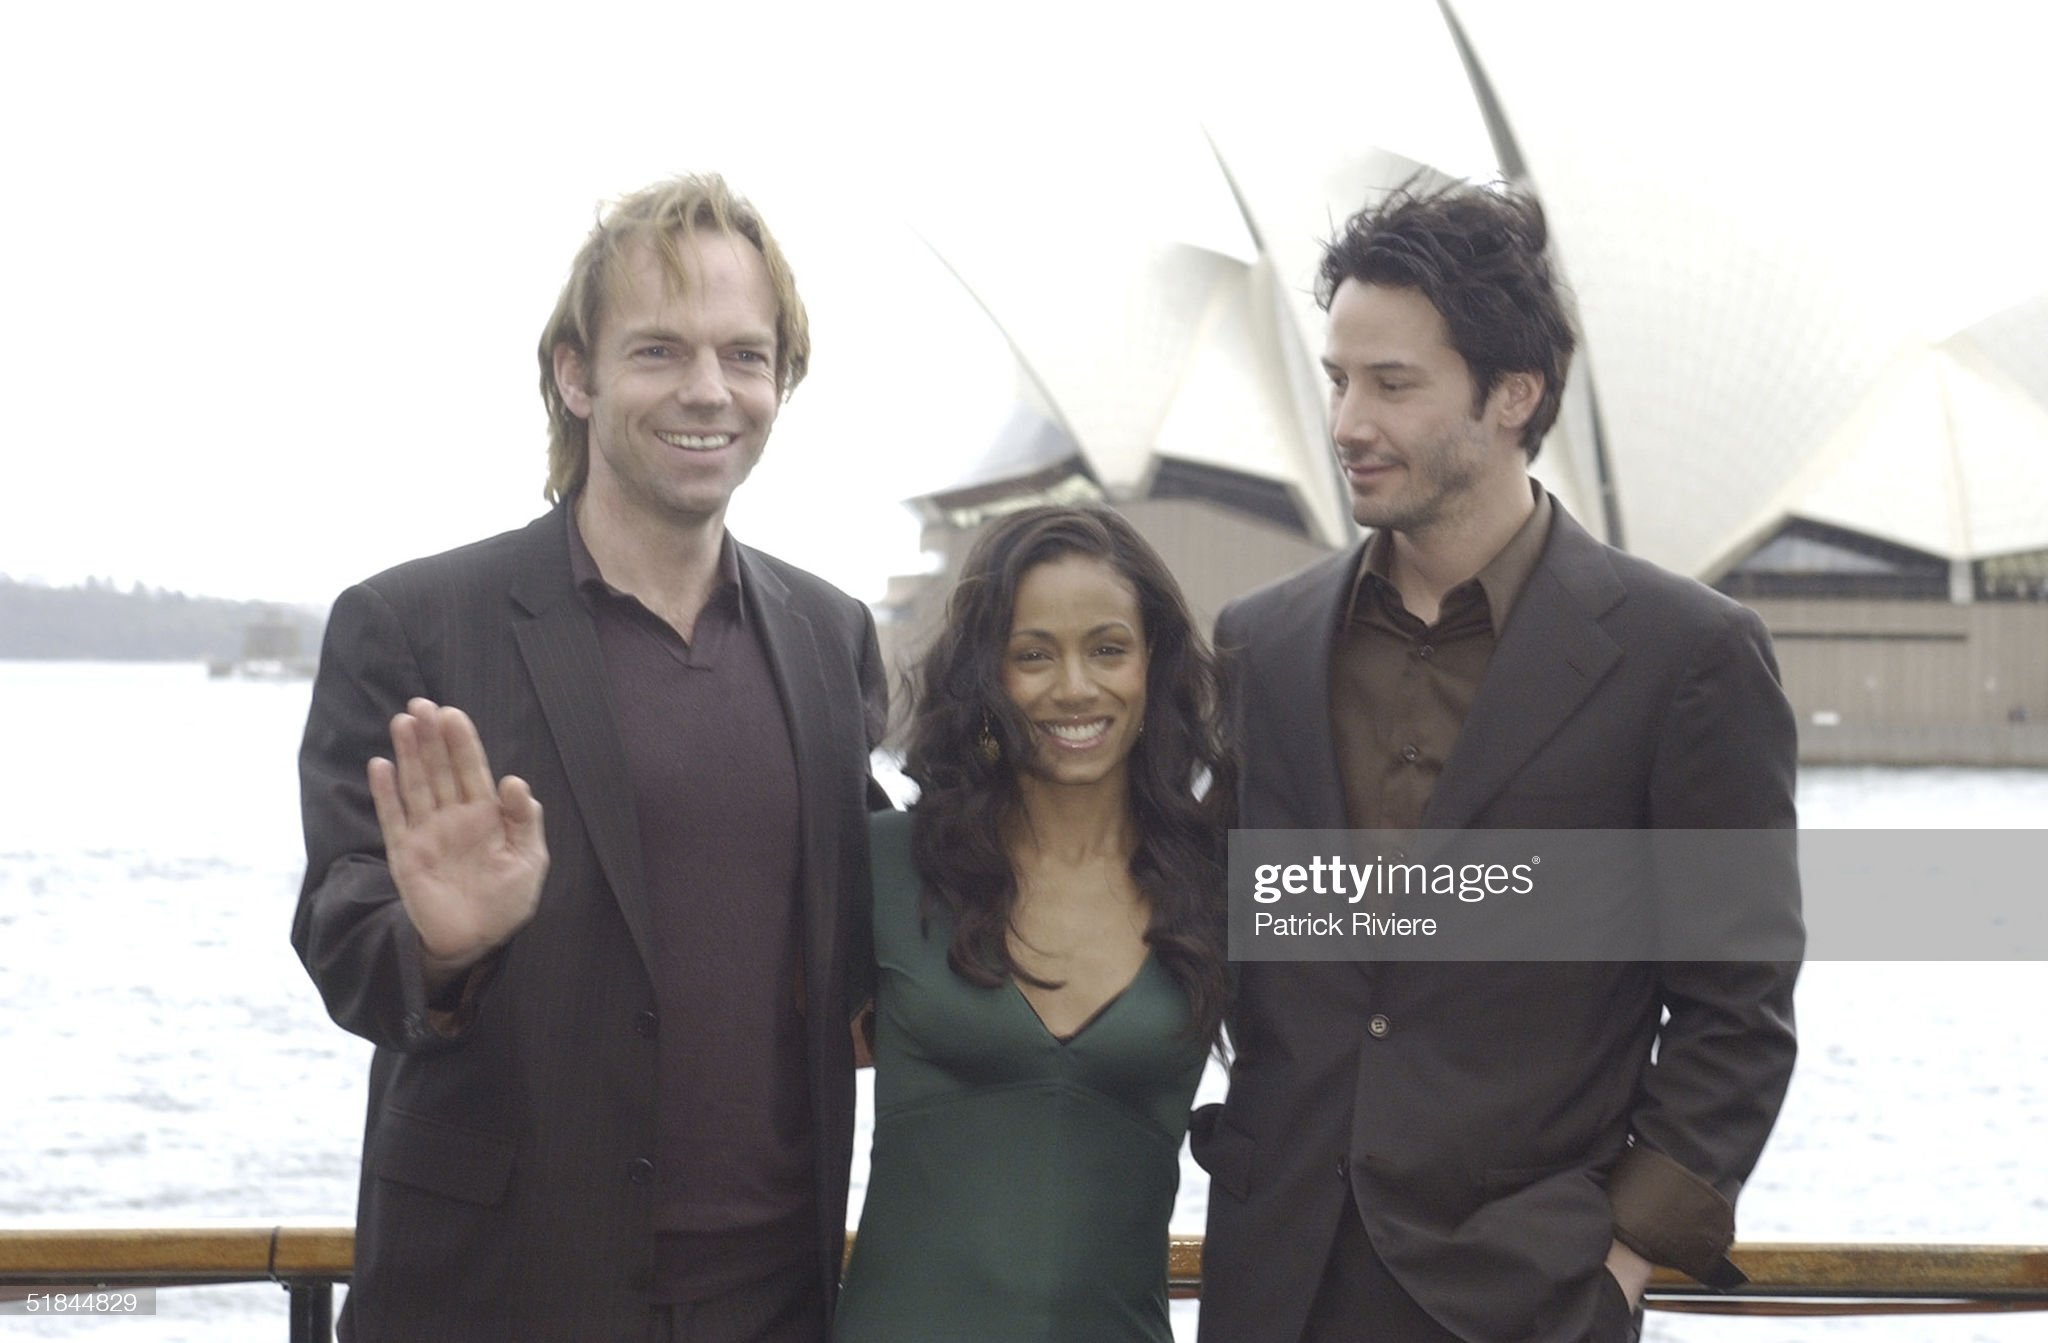 ¿Cuánto mide Hugo Weaving? - Altura - Real height -picture-id51844829?s=2048x2048